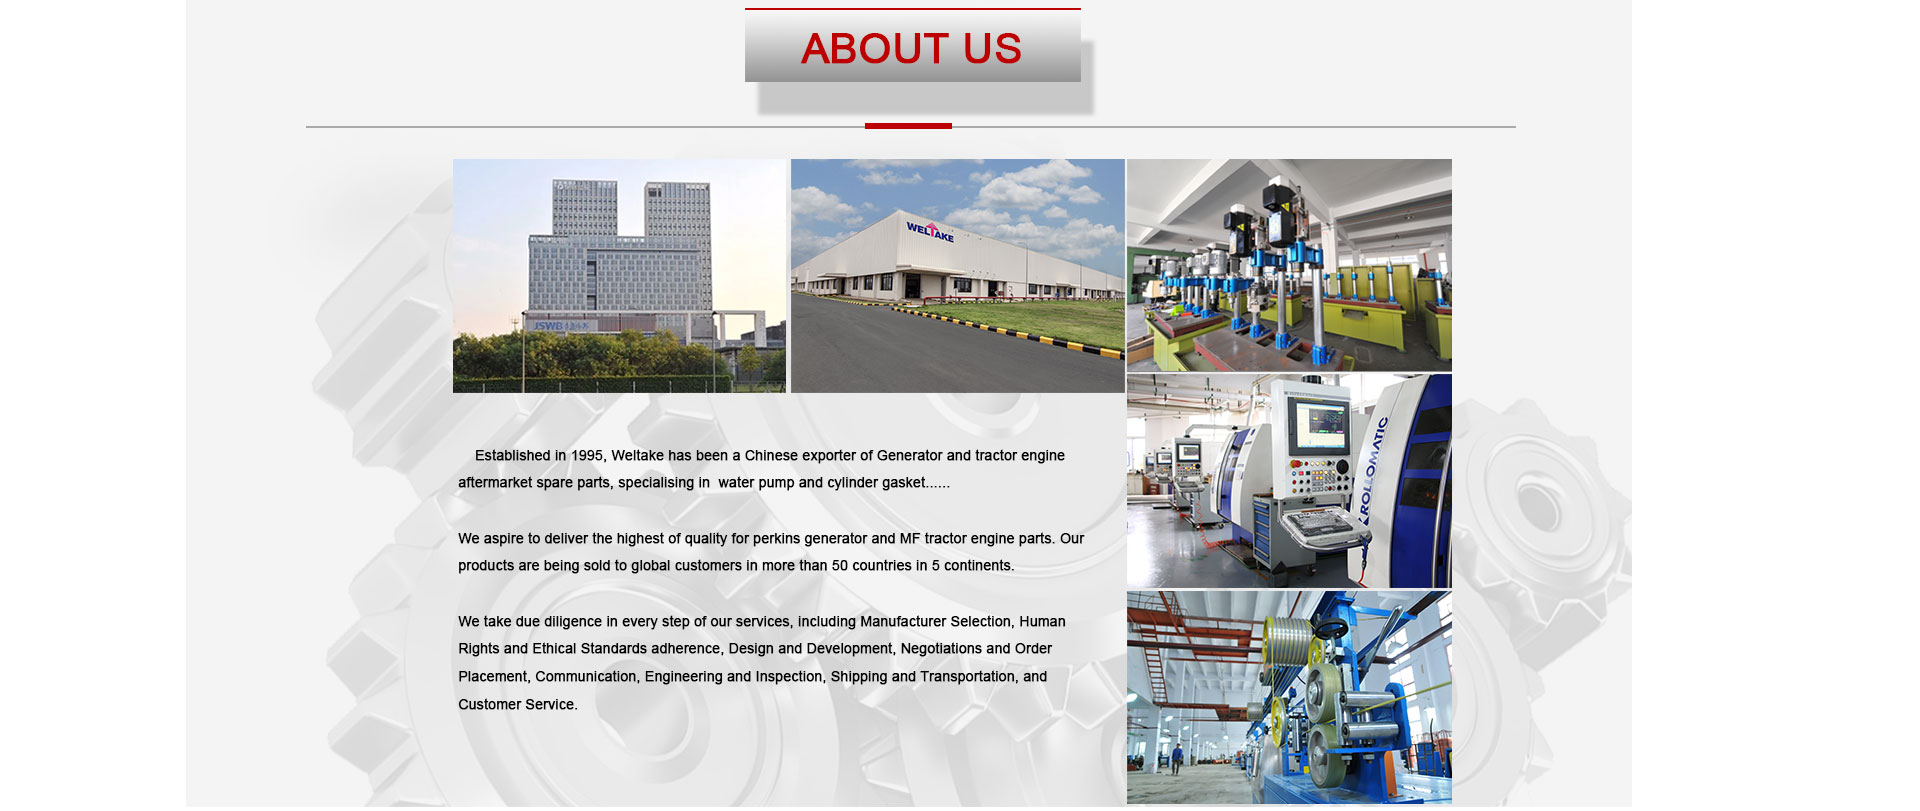 Weltake Import Export Company Limited - Tractor Parts